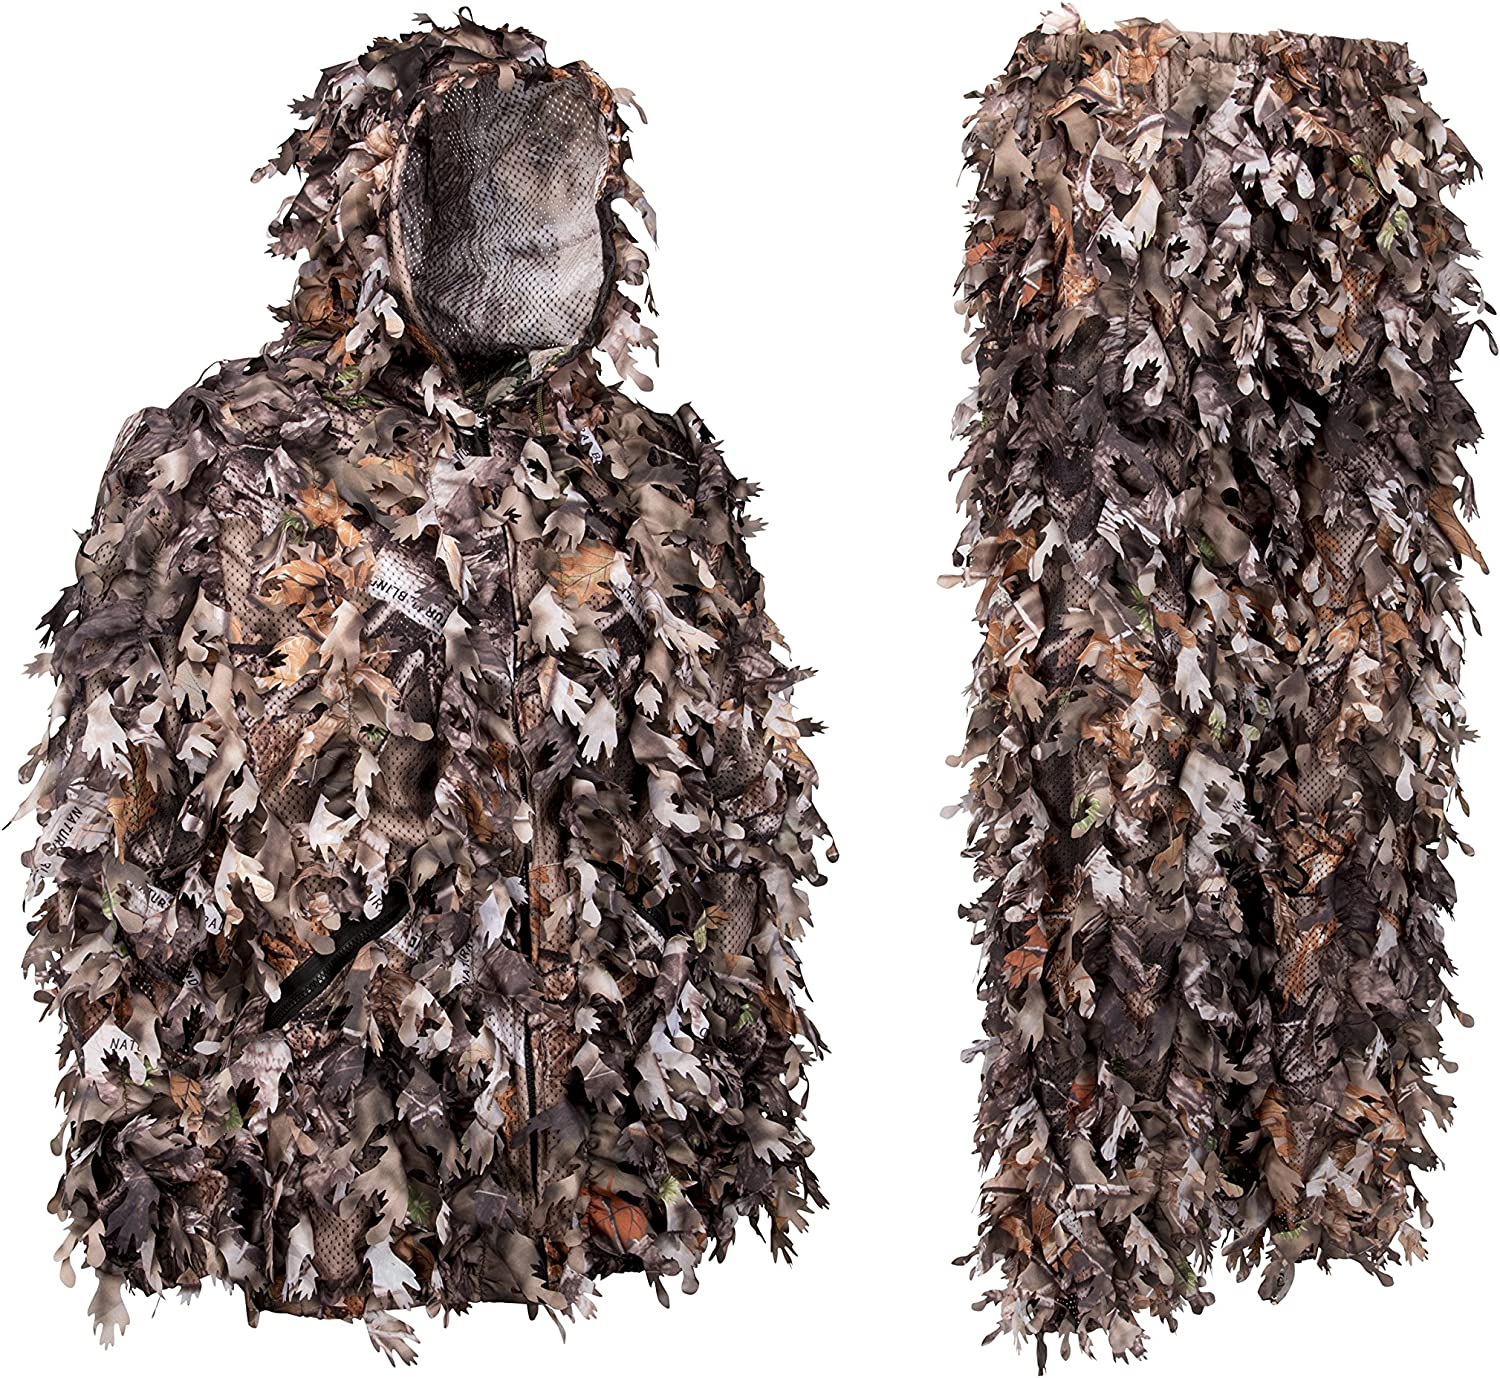 North Mountain Gear Ghillie Suit 3D Discount is also underway Hunting - Leafy Max 49% OFF Camo